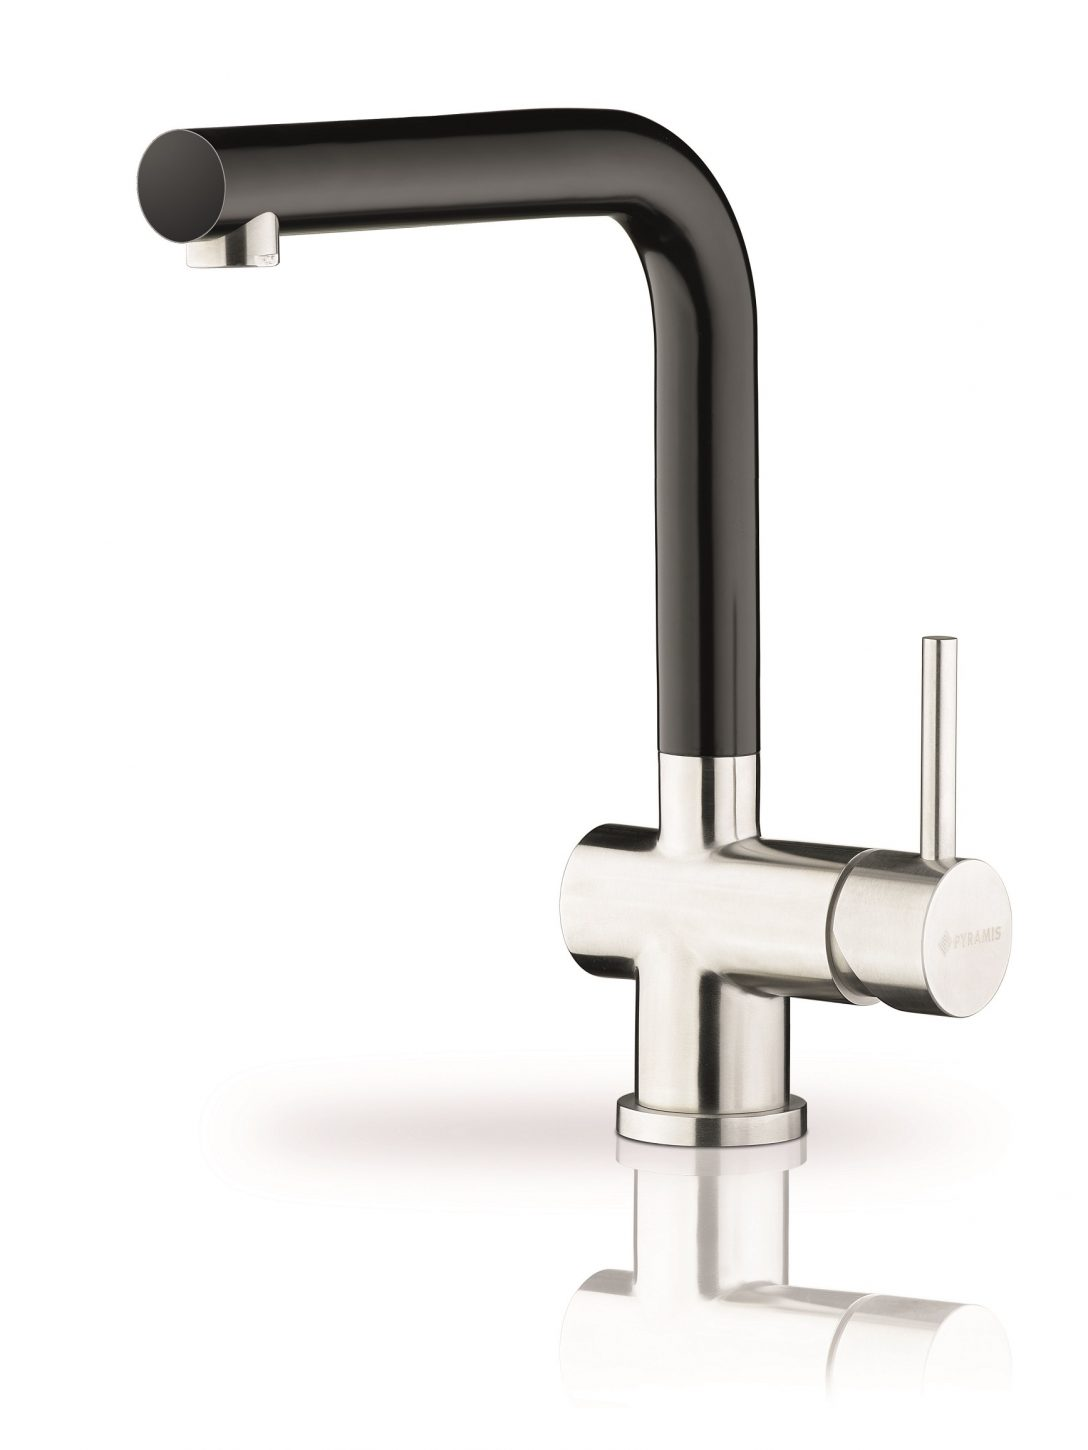 Large Size of Niederdruck Armatur Küche Grohe Amazon Niederdruck Armatur Küche Niederdruck Armatur Küche Bauhaus Niederdruck Armatur Küche Anthrazit Küche Niederdruck Armatur Küche